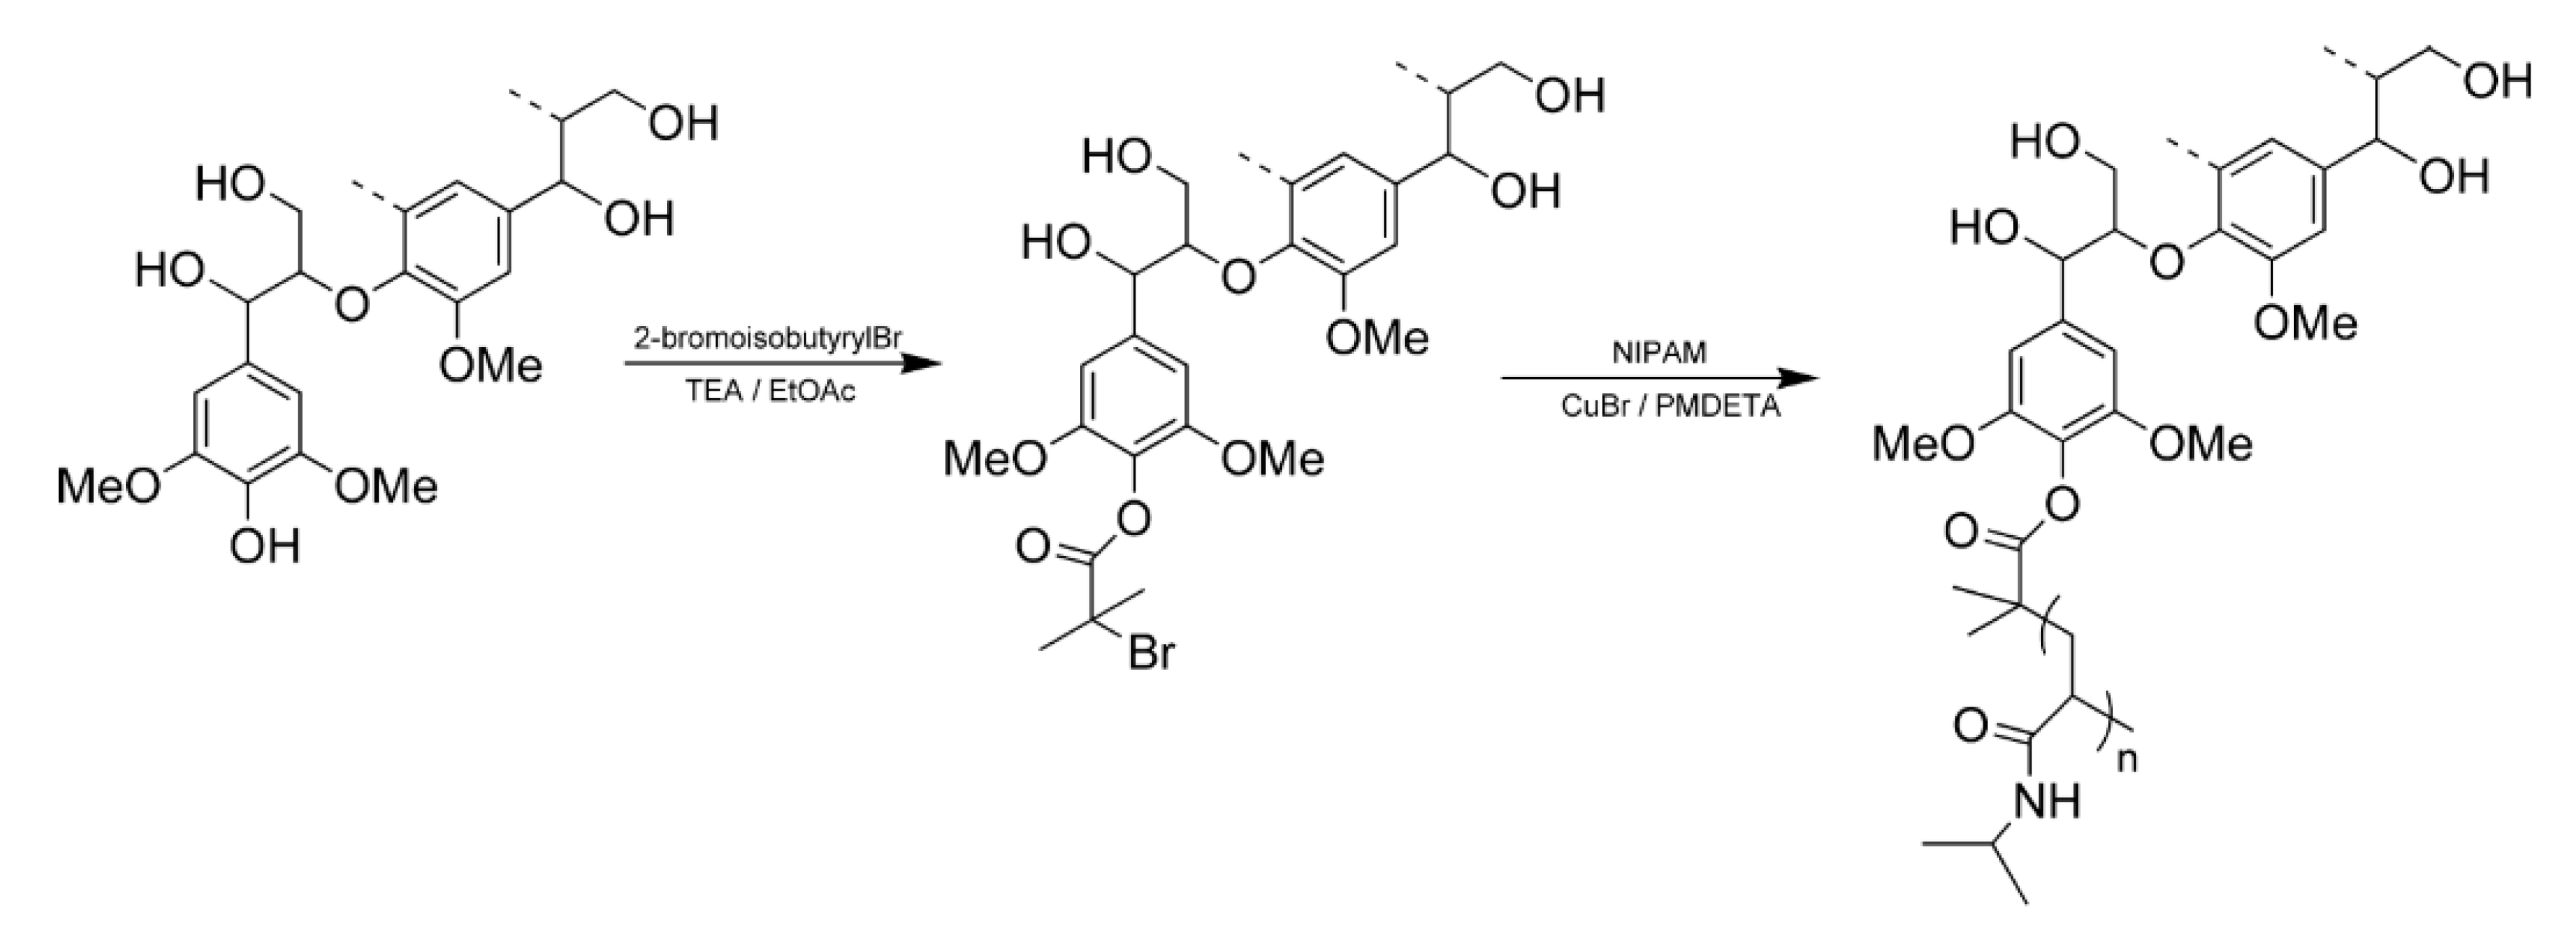 Polymers Free Full Text Insights Into The Potential Of Hardwood Kraft Lignin To Be A Green Platform Material For Emergence Of The Biorefinery Html